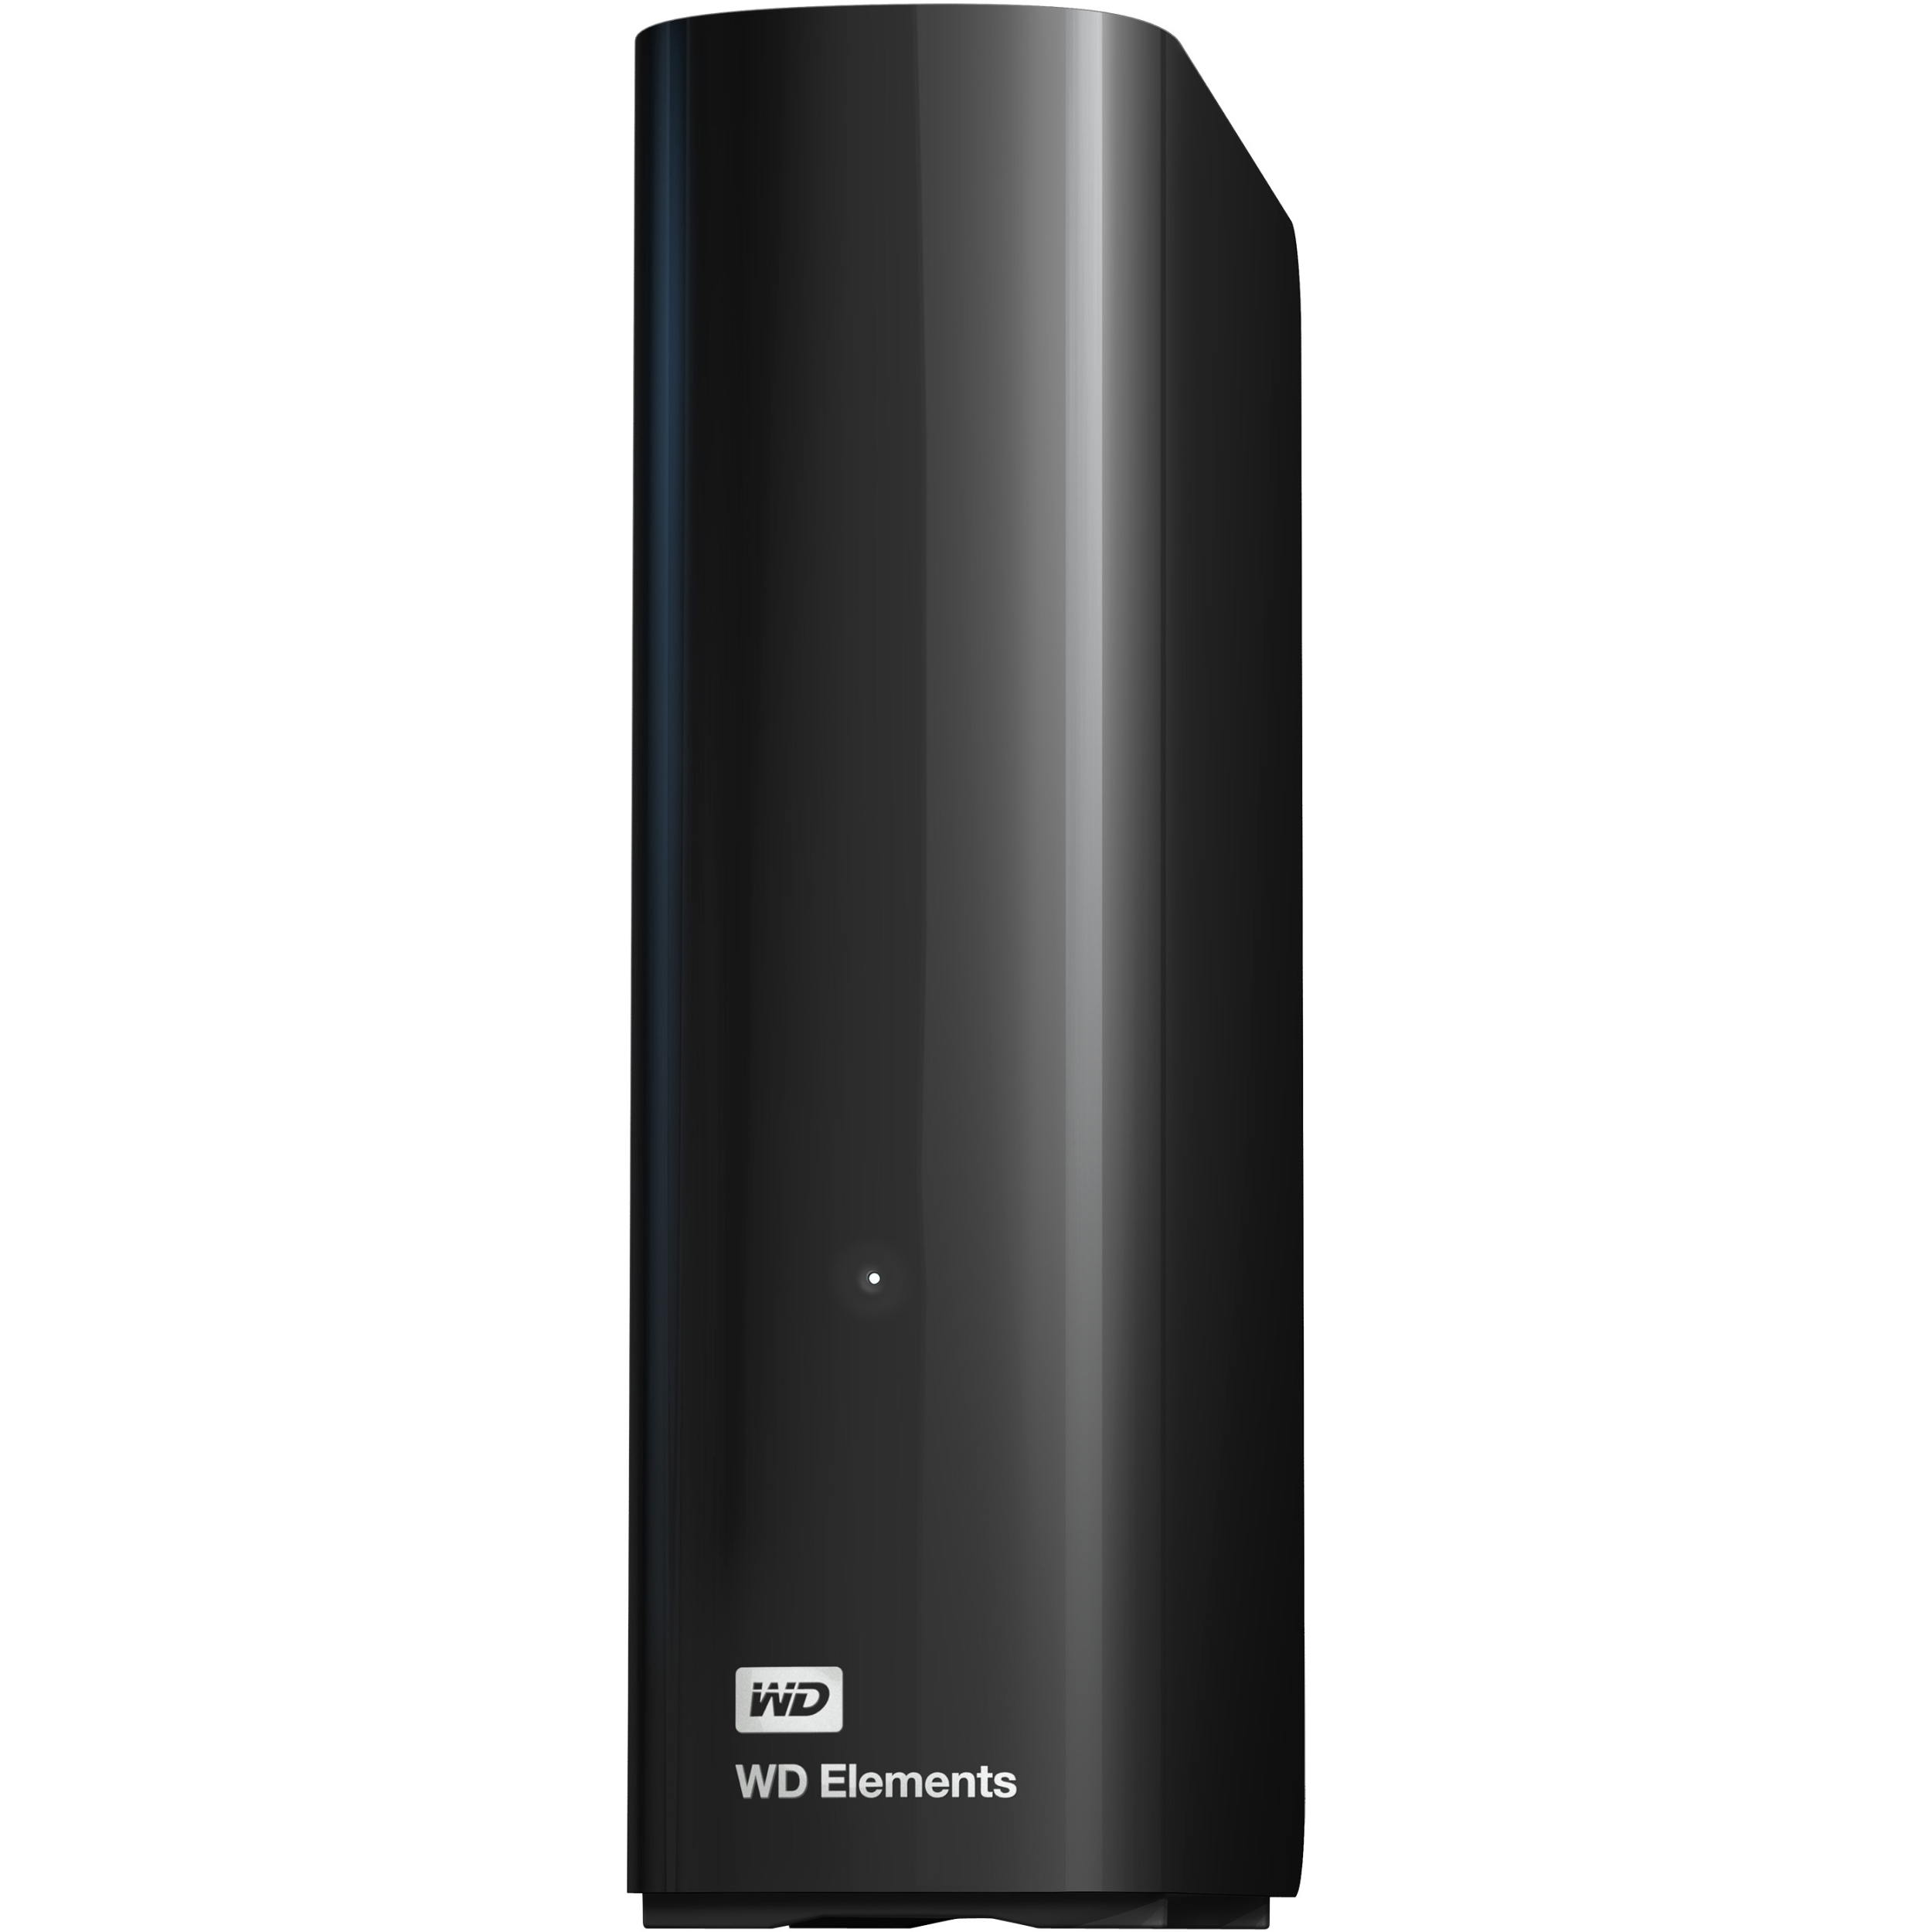 Western Digital Elements Desktop WDBWLG0050HBK - Hard dri...